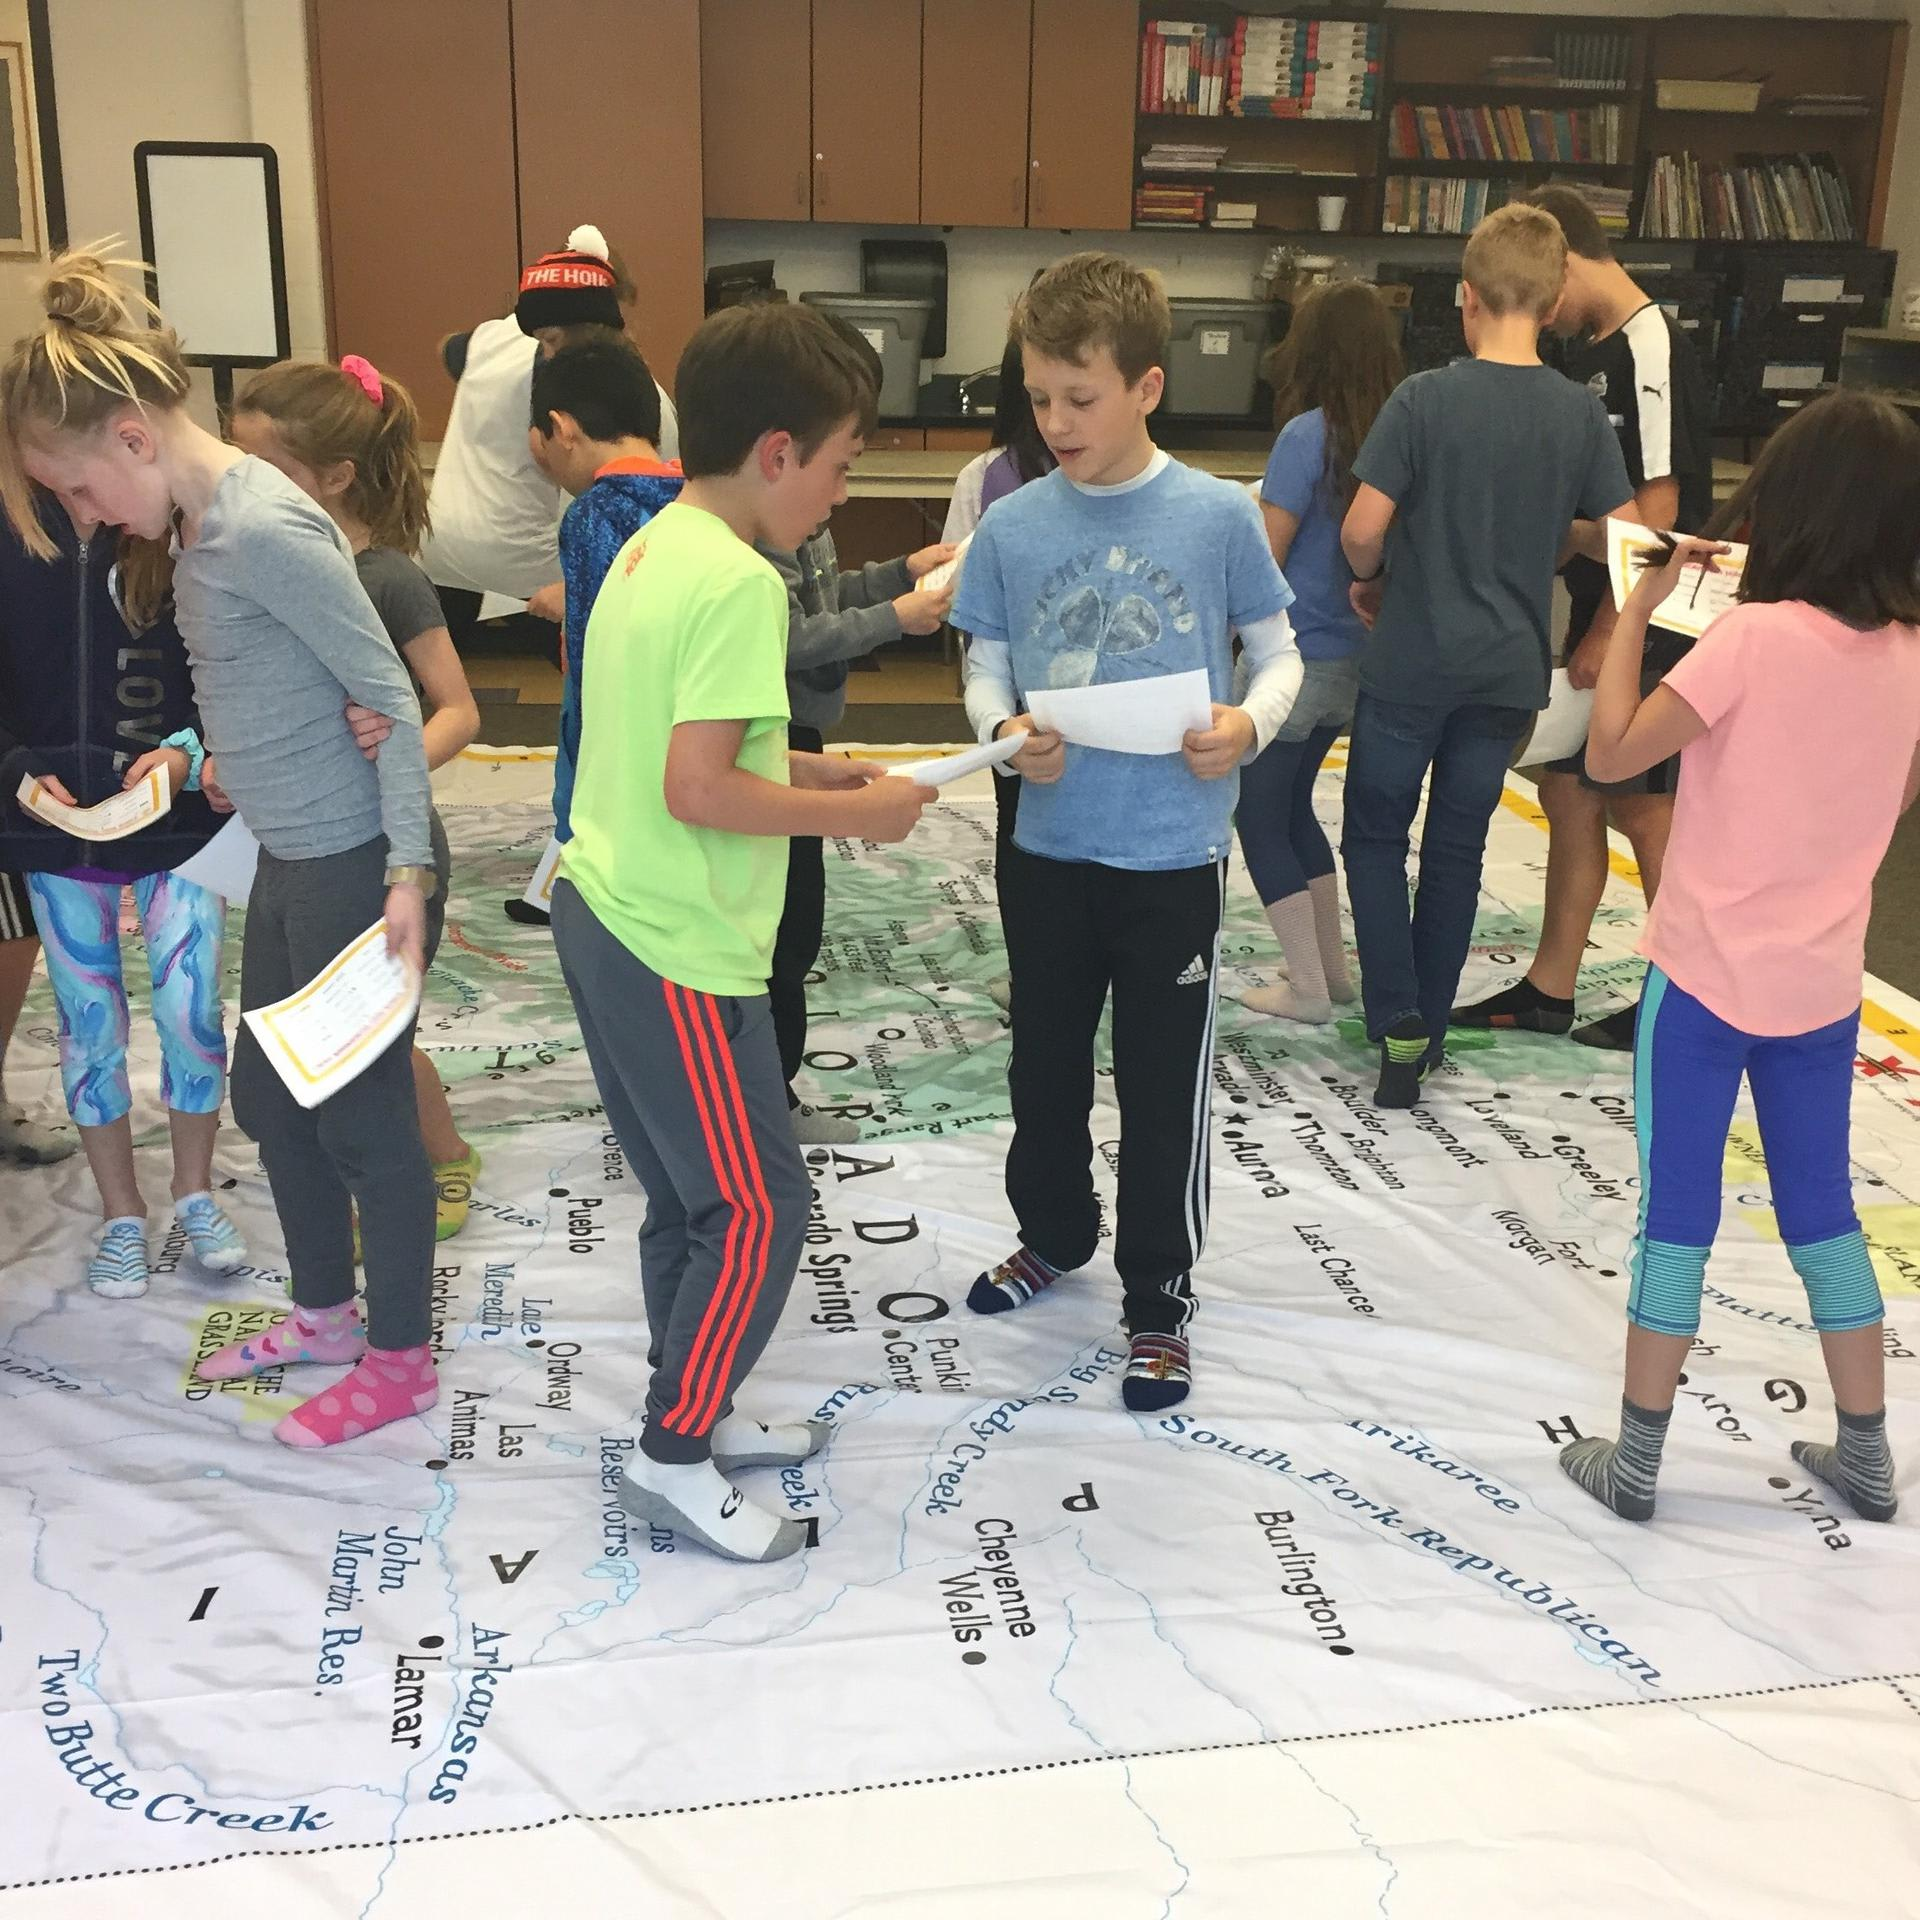 students learning on big map